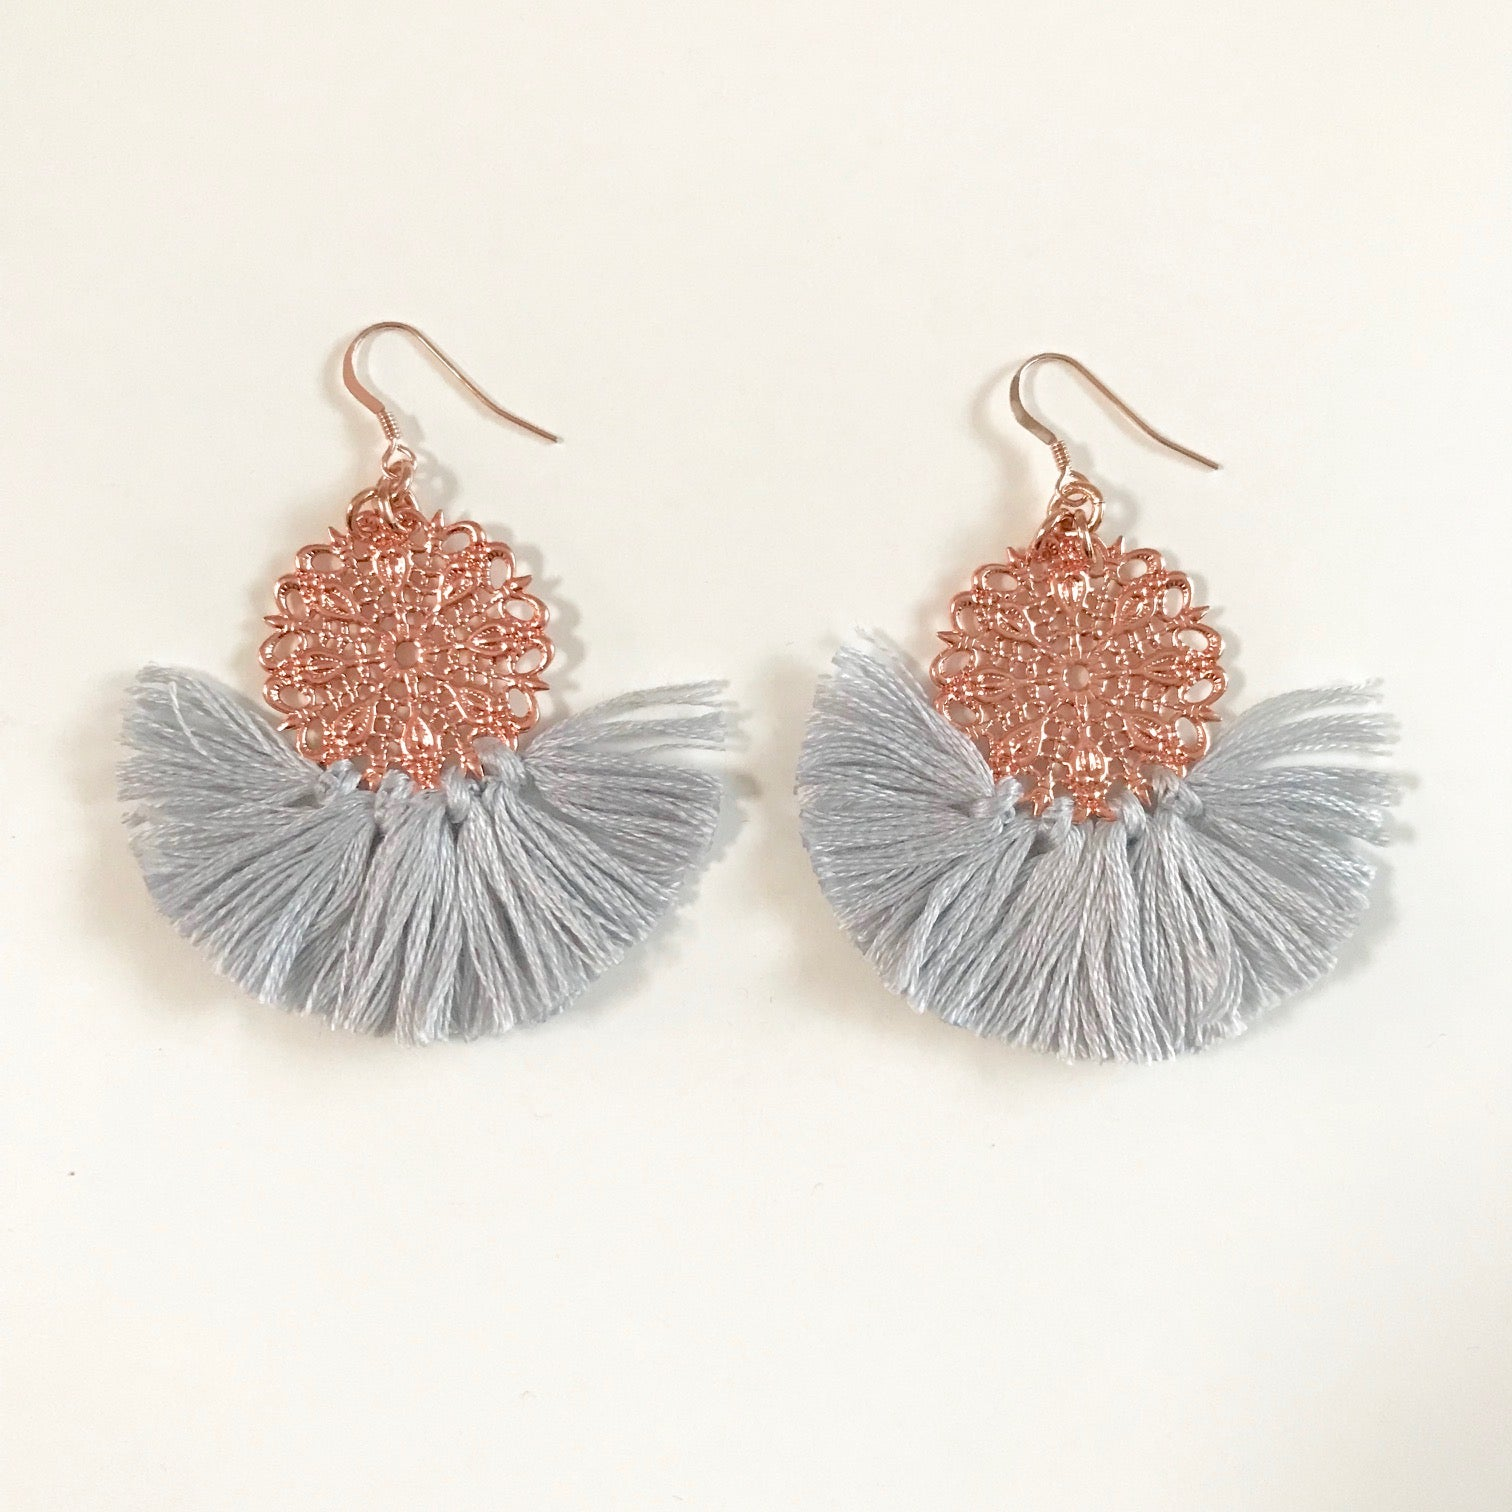 Ballerina Baby Fringe Earrings - Grey Skies